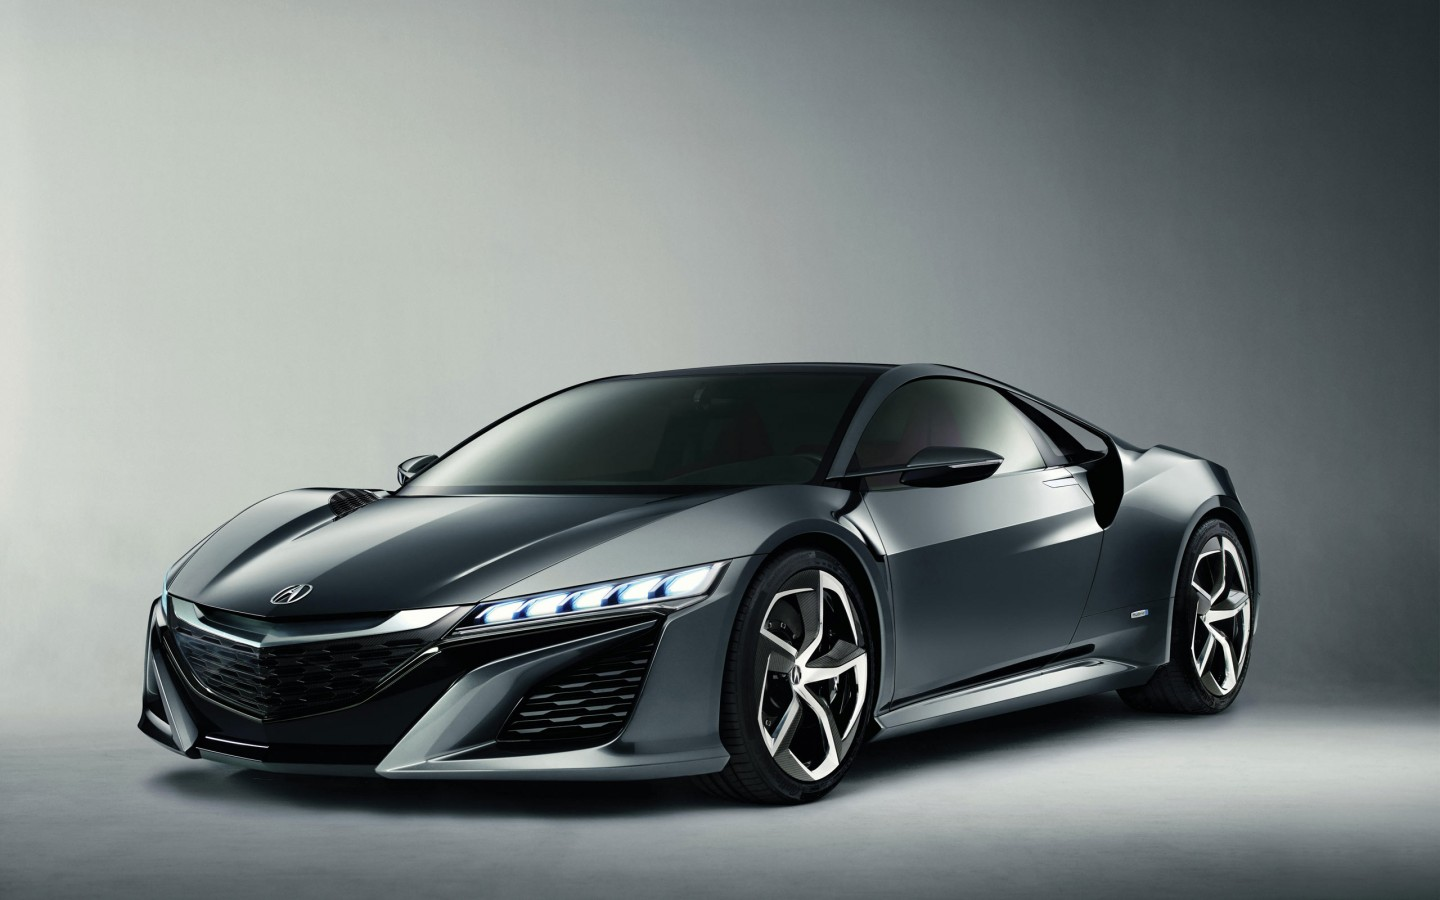 2013 acura nsx concept car wallpaper hd car wallpapers id 3242. Black Bedroom Furniture Sets. Home Design Ideas